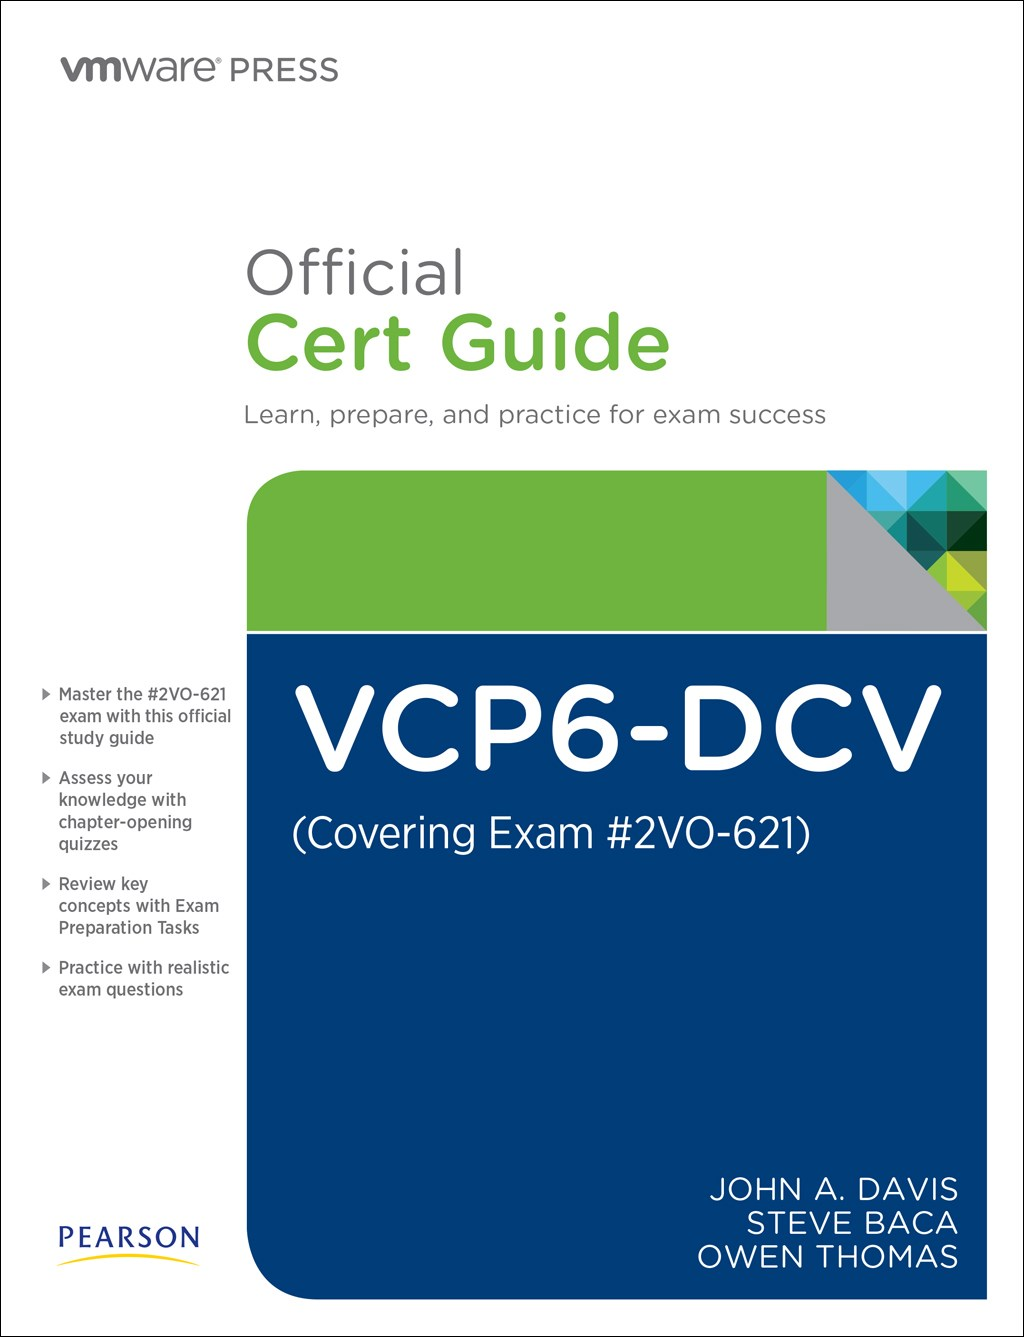 VCP6-DCV Official Cert Guide (Exam #2V0-621), 3rd Edition